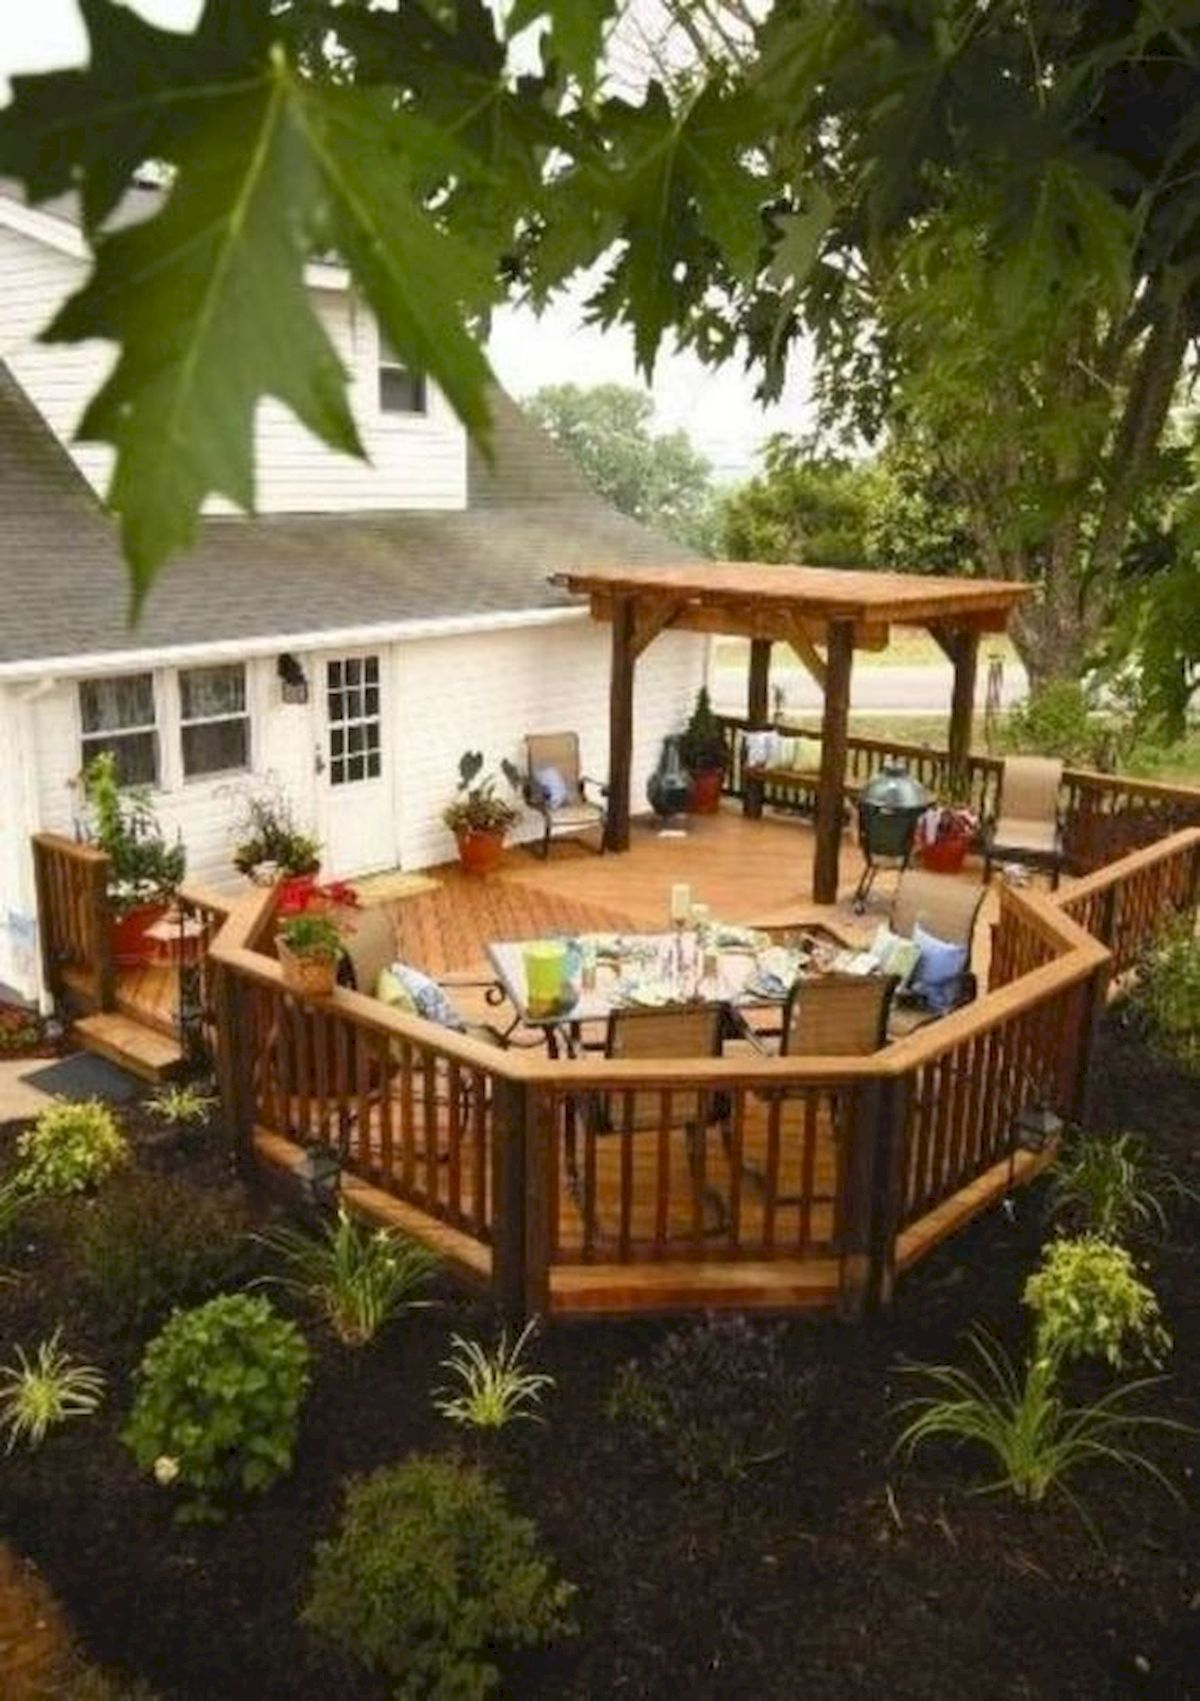 50 Best DIY Backyard Patio and Decking Design Ideas (17)